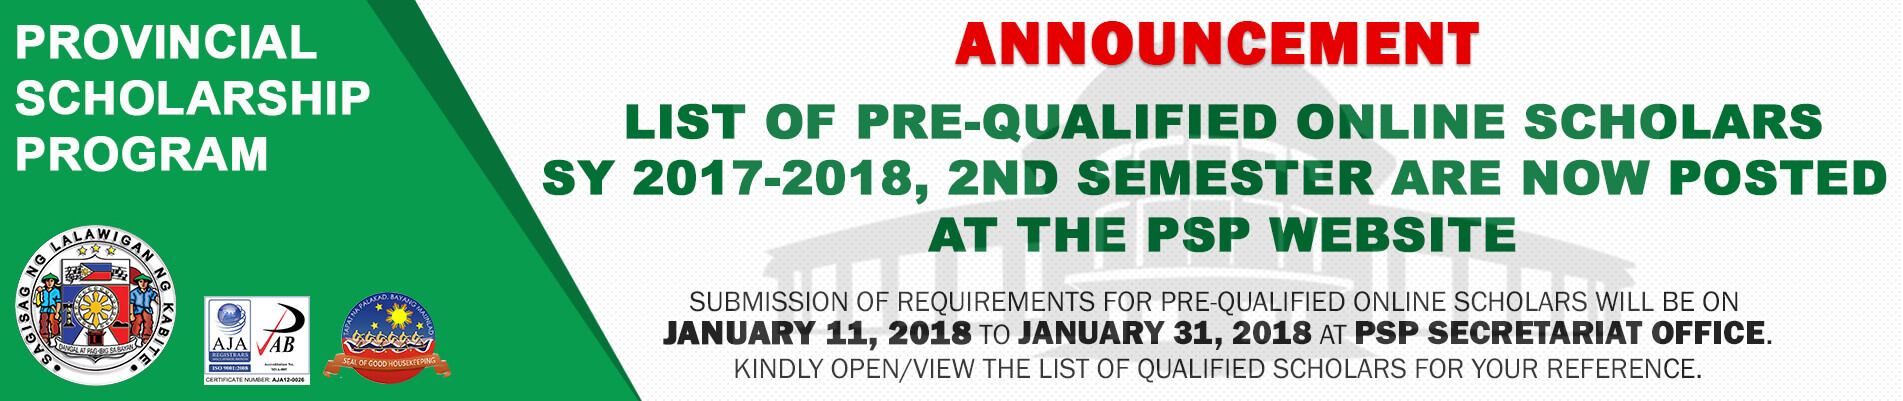 List of Pre-Qualified Online Scholars SY 2017-2018, 2nd Semester are now posted at the PSP Website